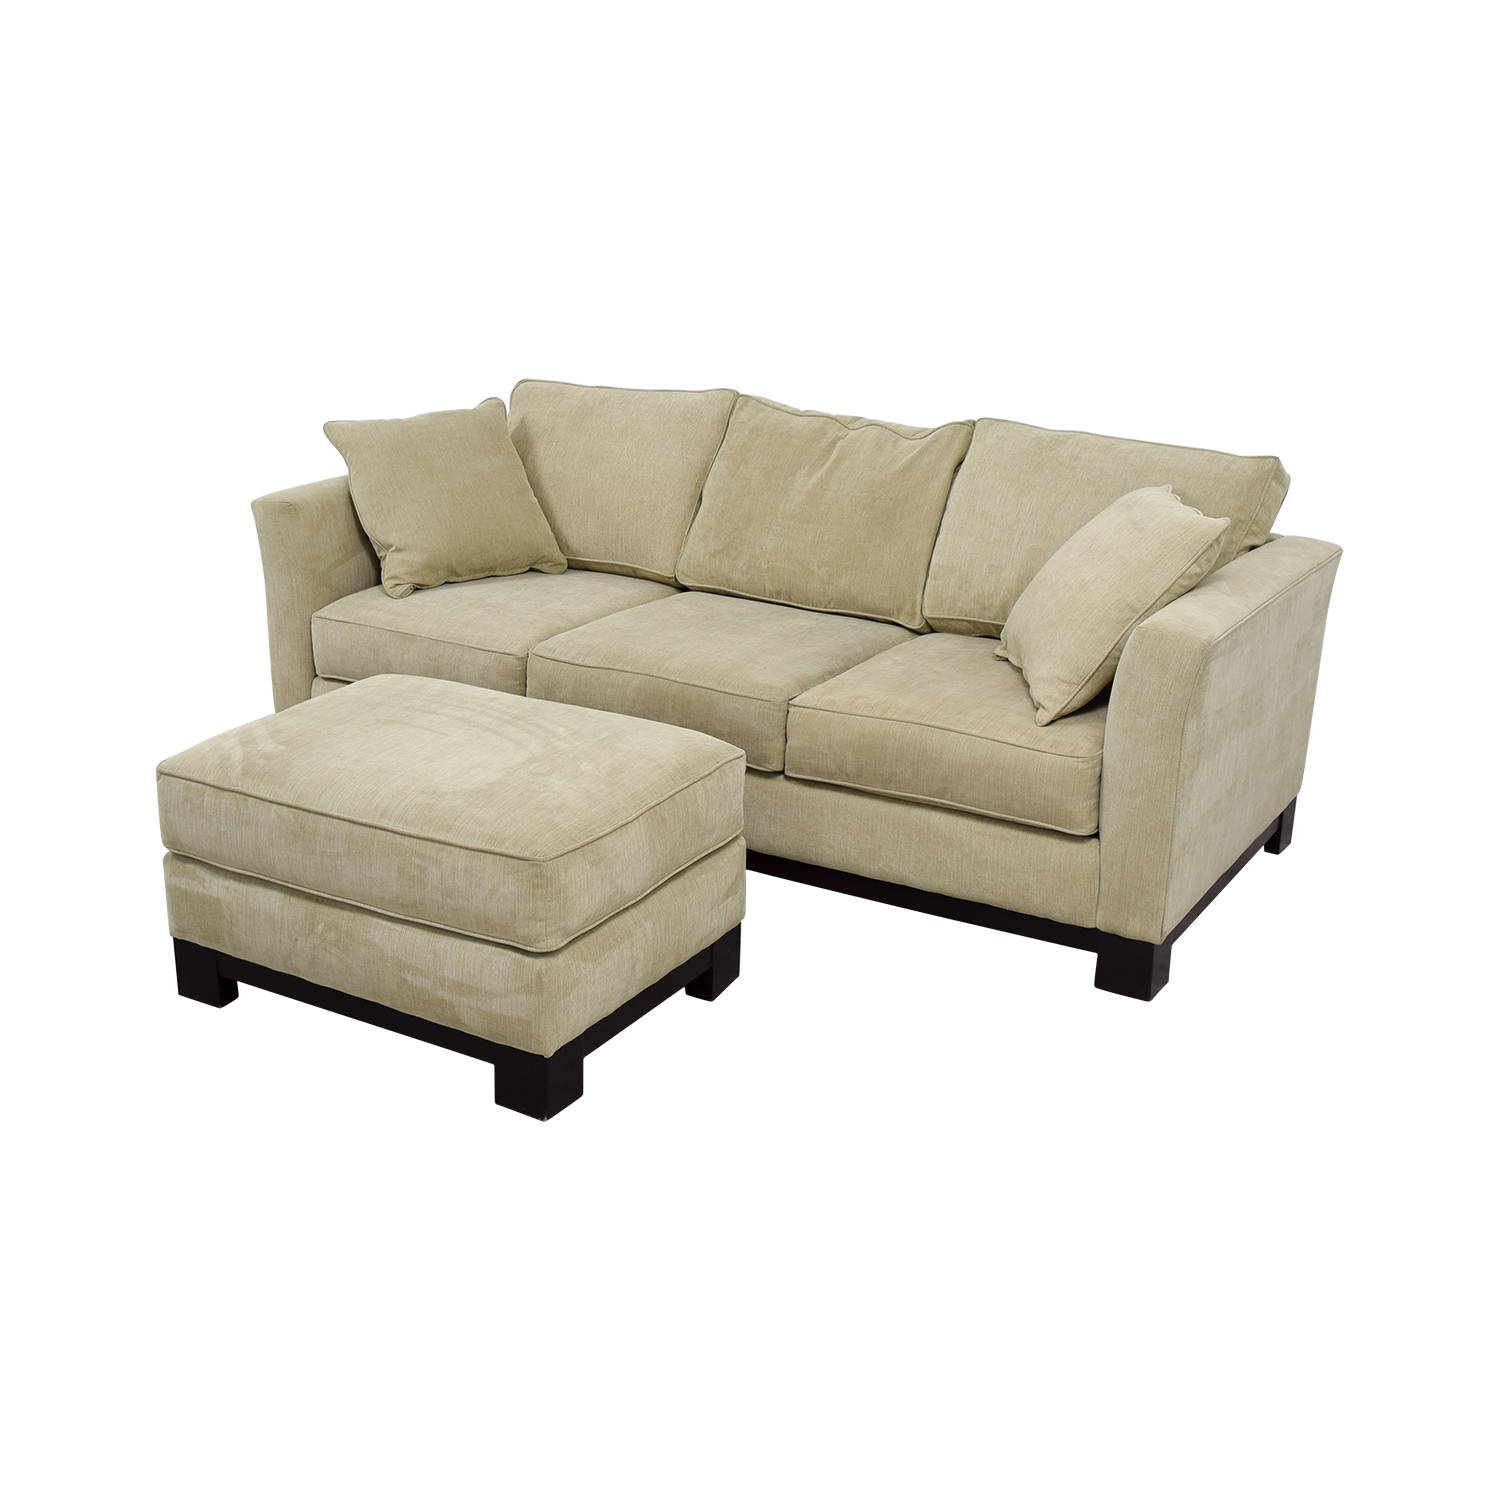 buy Macy's Macy's Grey Fabric Couch and Large Ottoman online